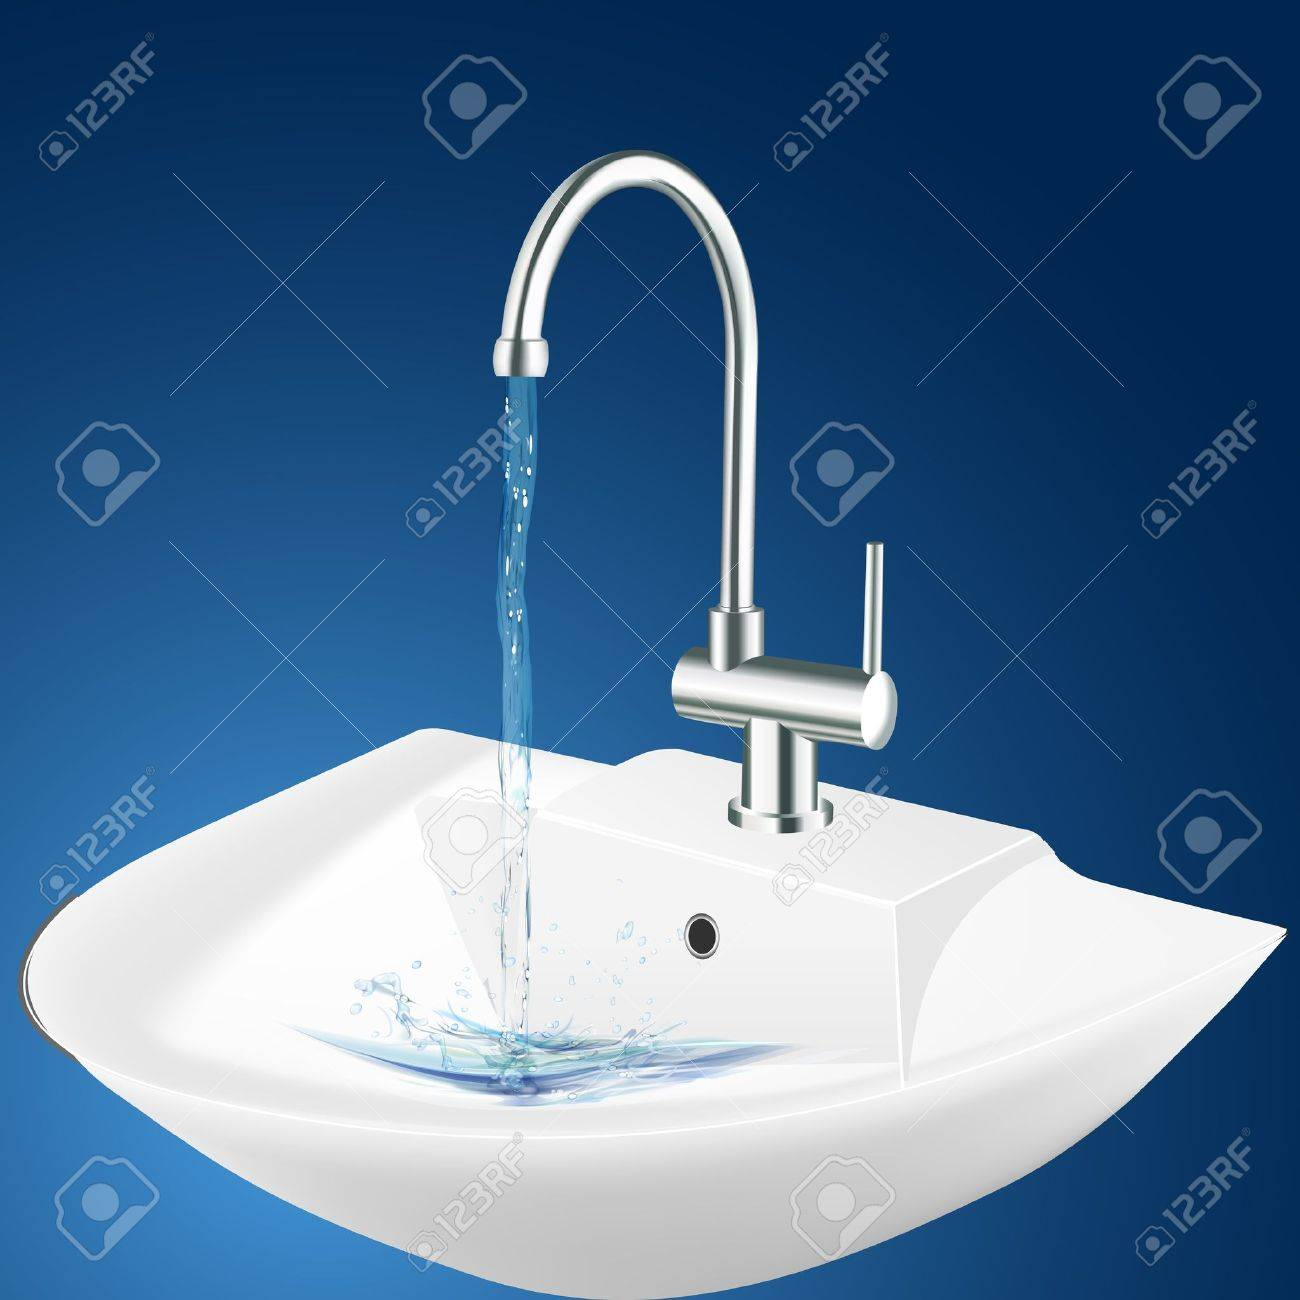 illustration of wash basin Stock Vector - 8248049